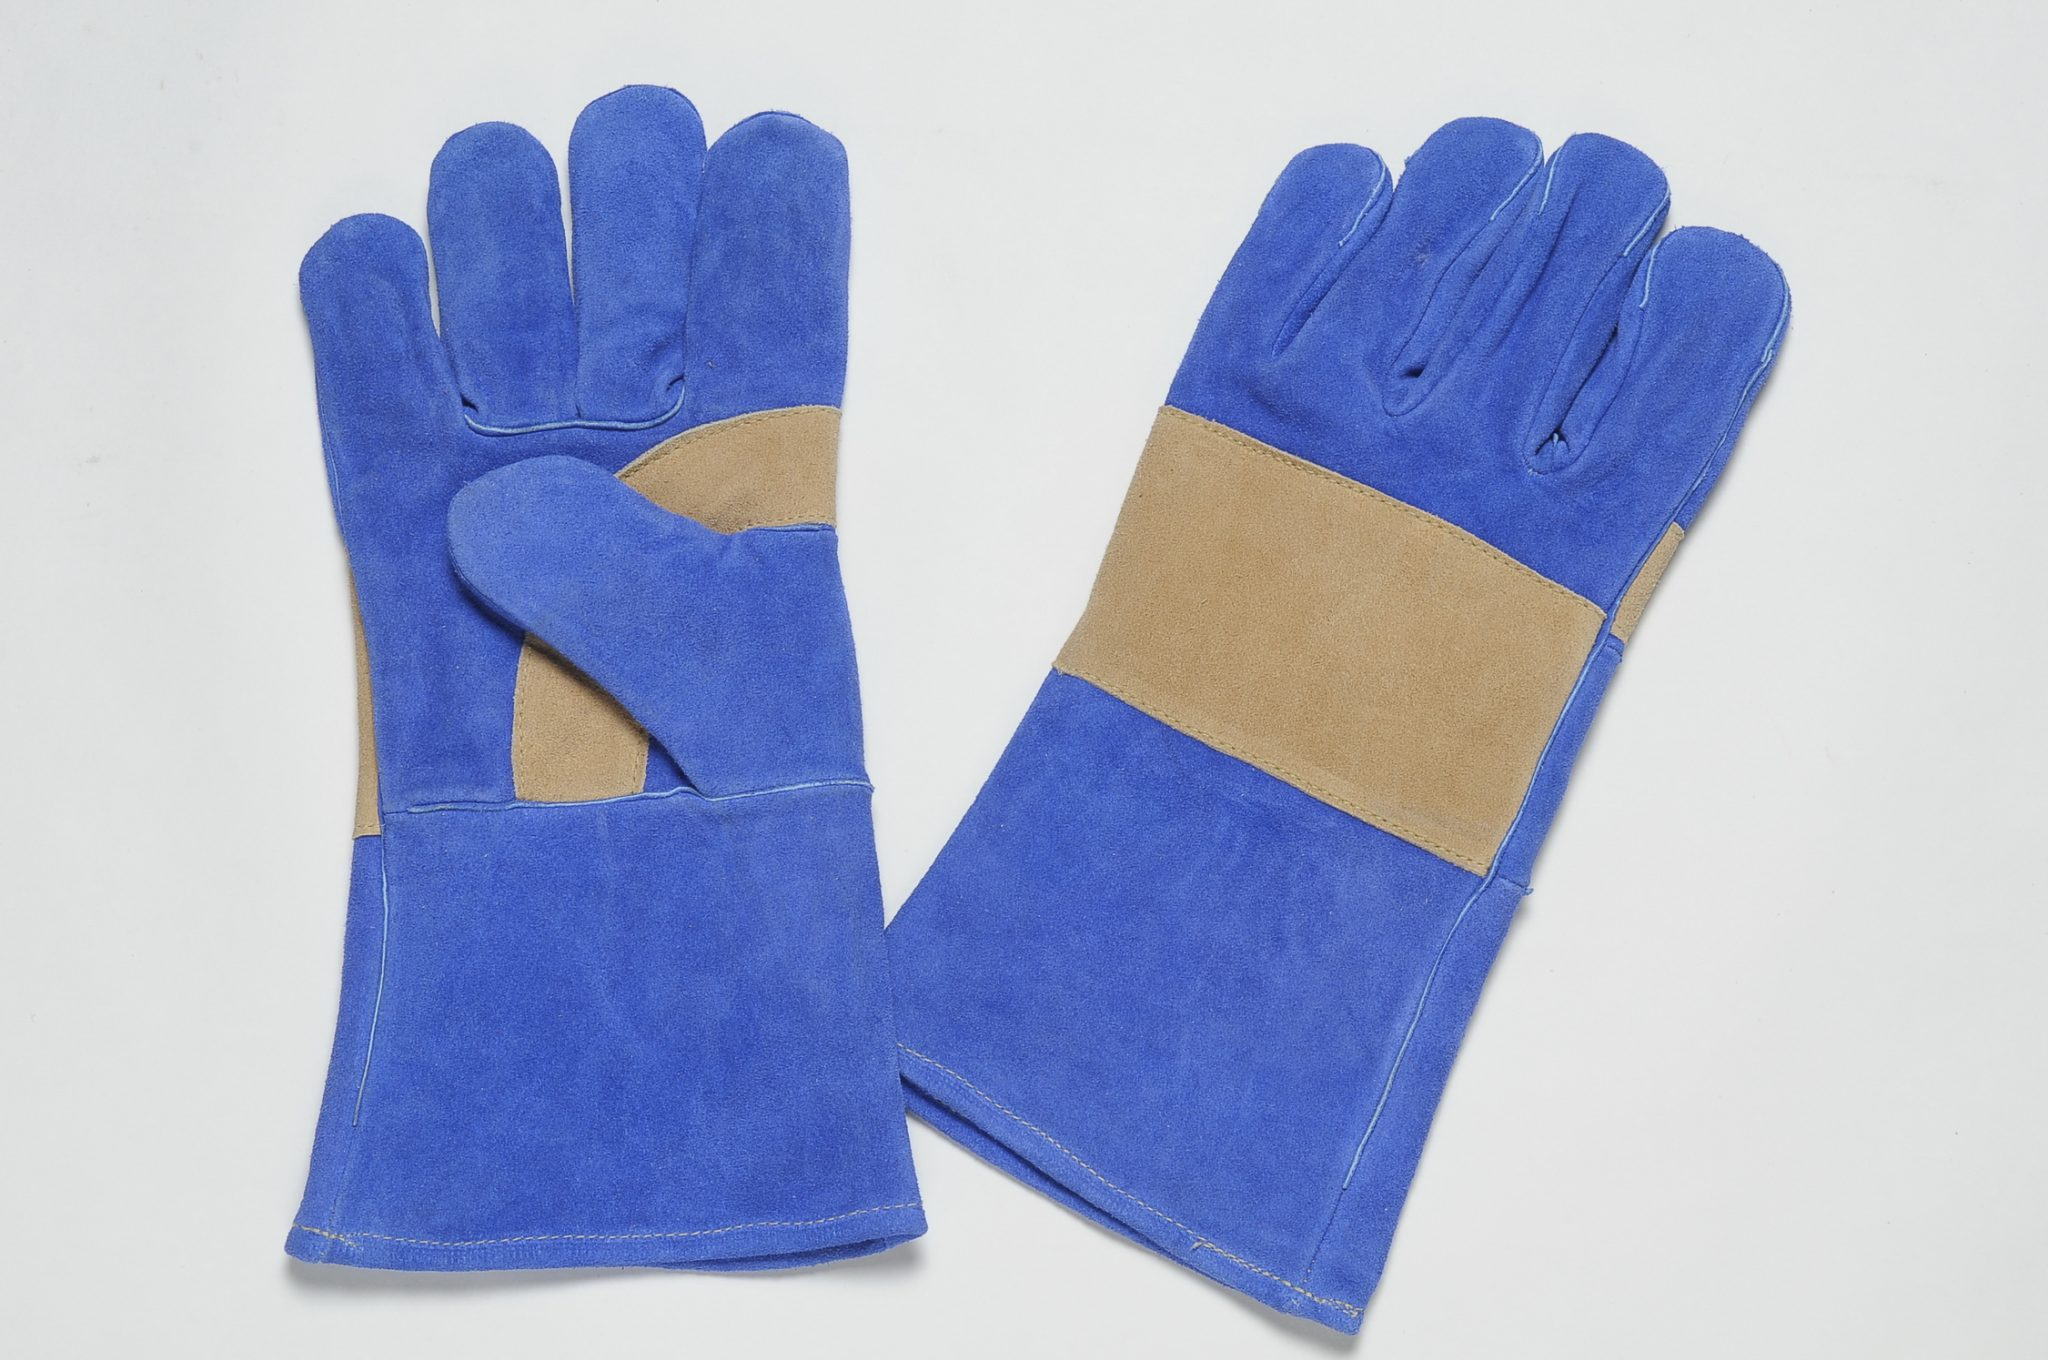 BLUE COLOUR SPLIT ALL LEATHER GLOVES, RE-INFORCEMENT ON THE PALM OF BROWN SPLIT LEATHER